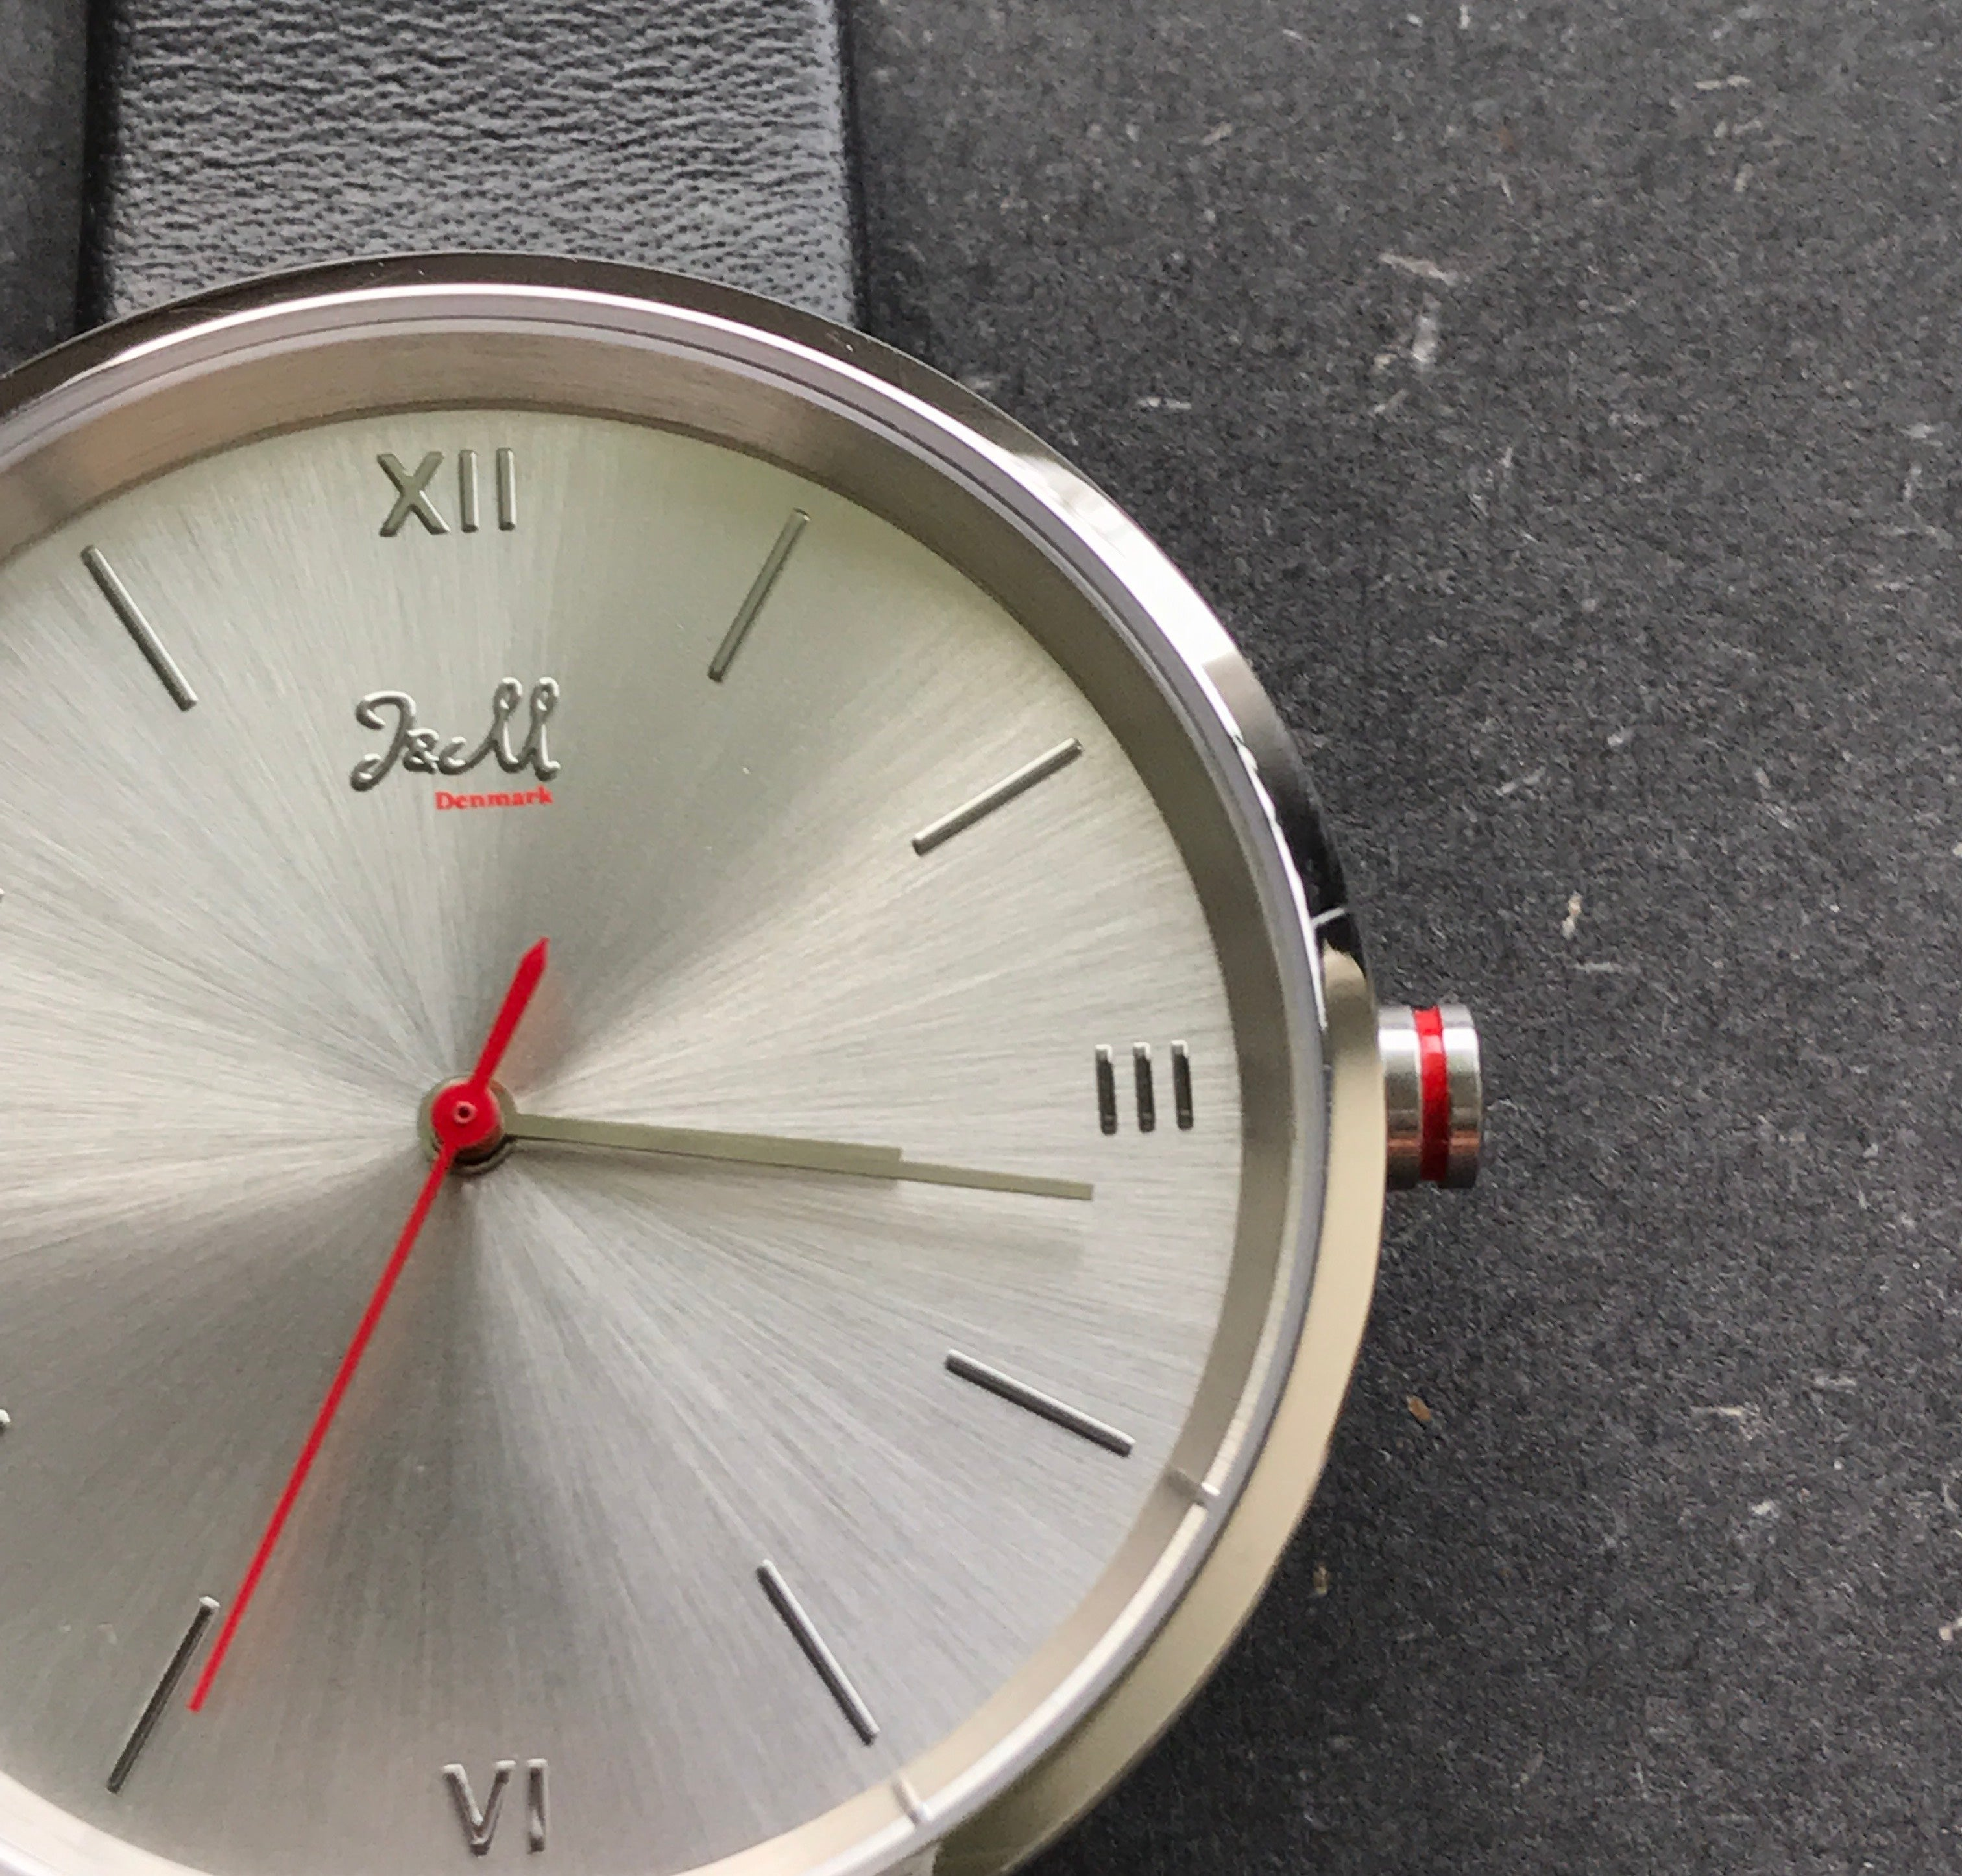 The red details in J&M watches